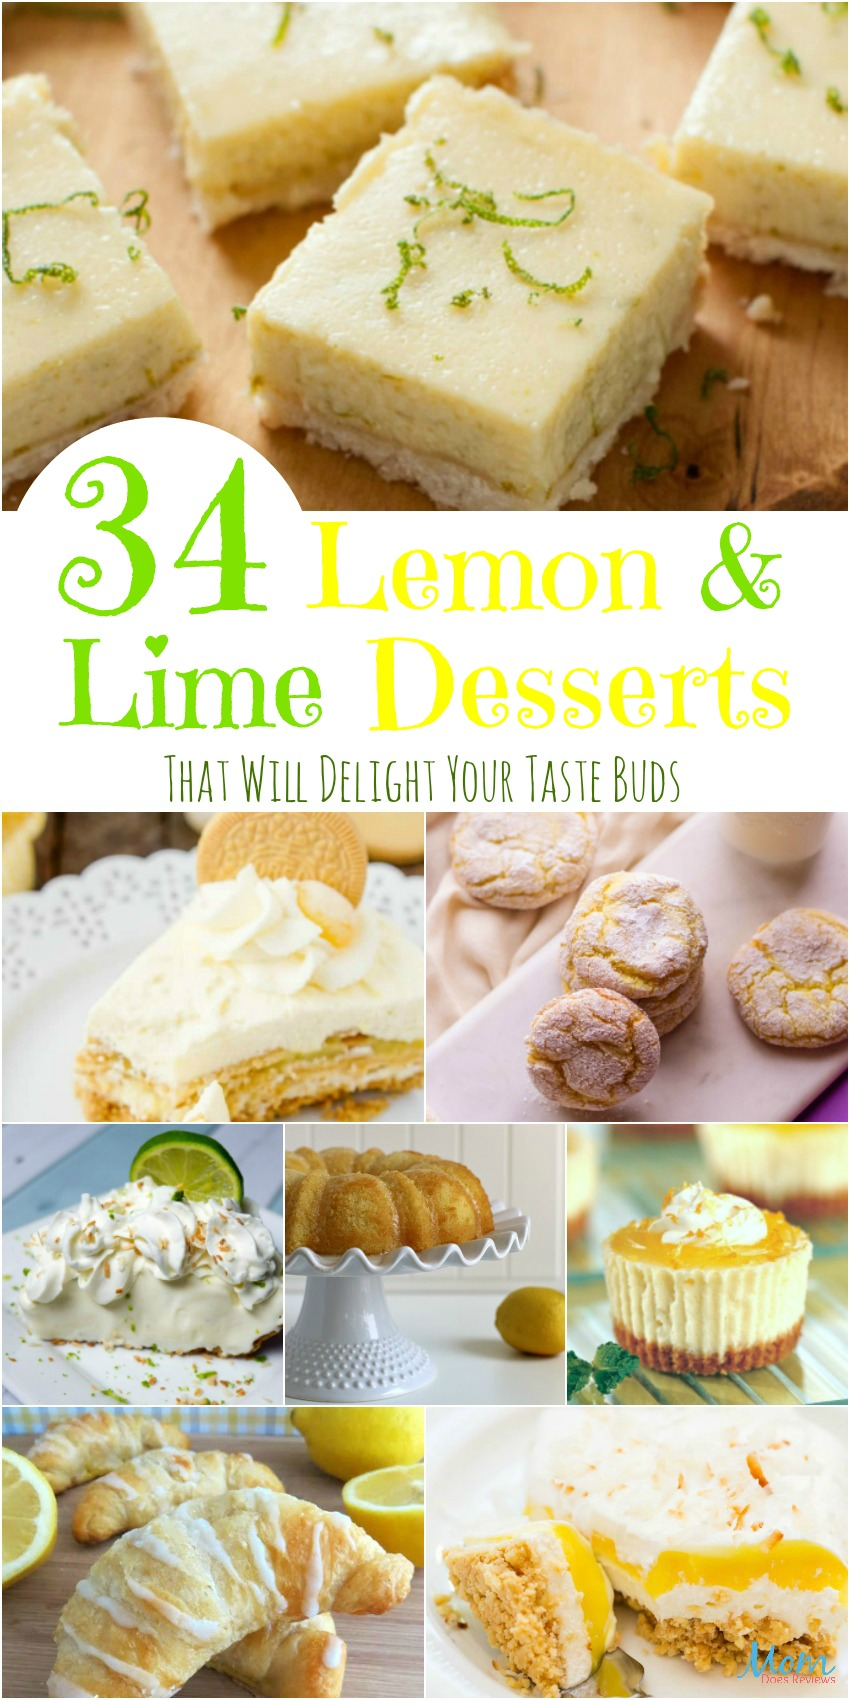 34 Lemon and Lime Desserts That Will Delight Your Taste Buds {Part 1}